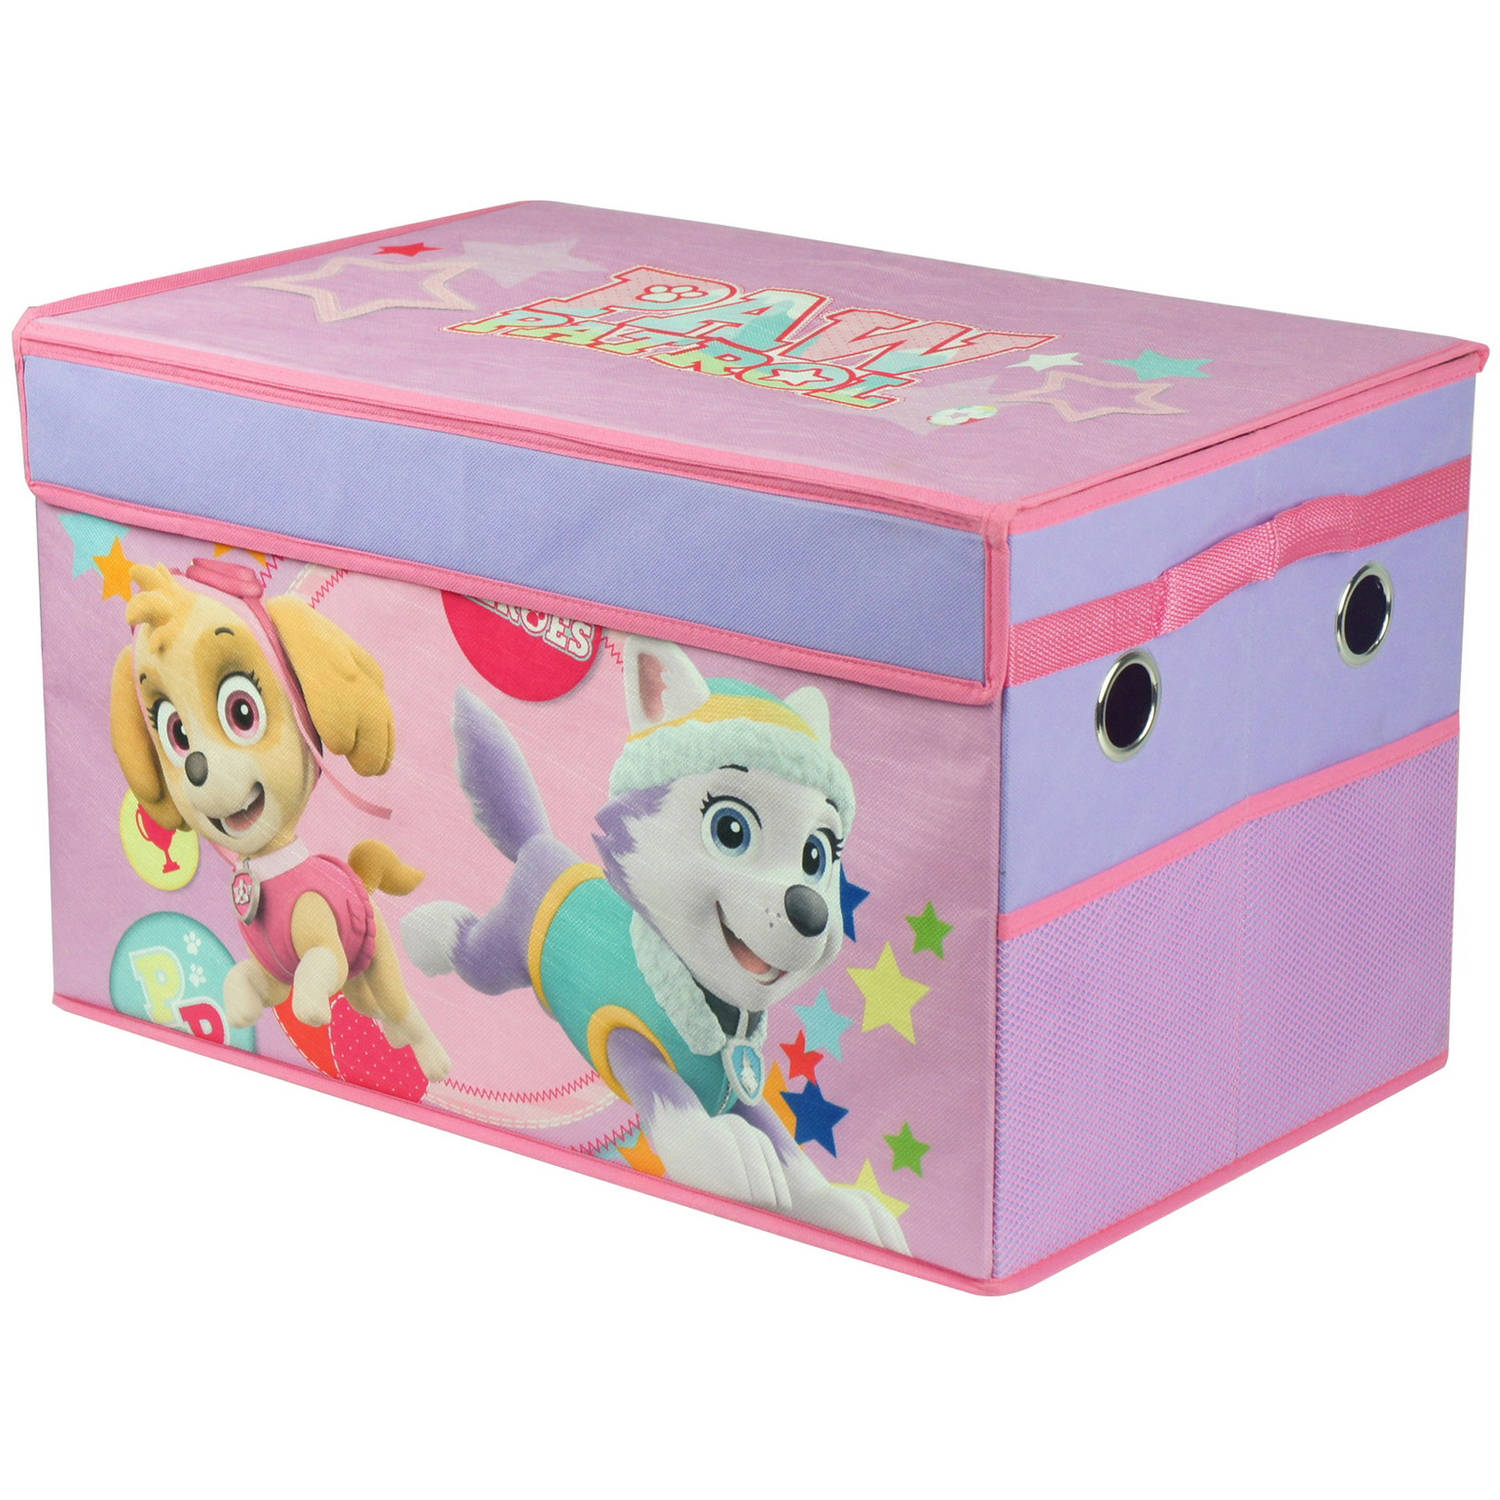 Paw Patrol Kids Toy Organizer Bin Children S Storage Box: Paw Patrol Girl Collapsible Toy Storage Trunk